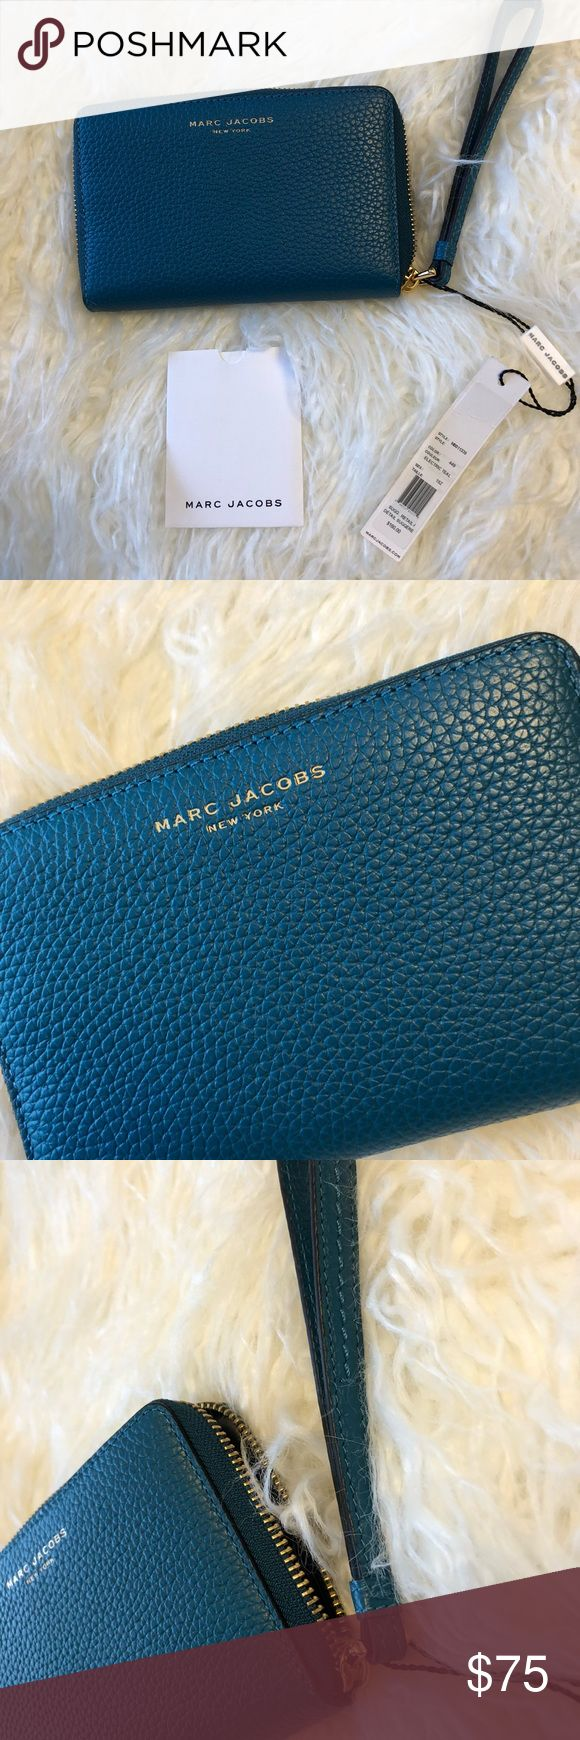 Marc Jacobs iPhone  wristlet Gorgeous teal pebble leather - With gold hardware. Measures 6 1/2 x 4. Has card slots spot for ID and Additional pockets . Fits in iPhone 7 or the iPhone 8 a smaller size. ( without a case on ) . I have the iPhone ate. And without my phones case on it the phone slides in perfectly to the side compartment. Teal is the color. Marc Jacobs Bags Clutches & Wristlets